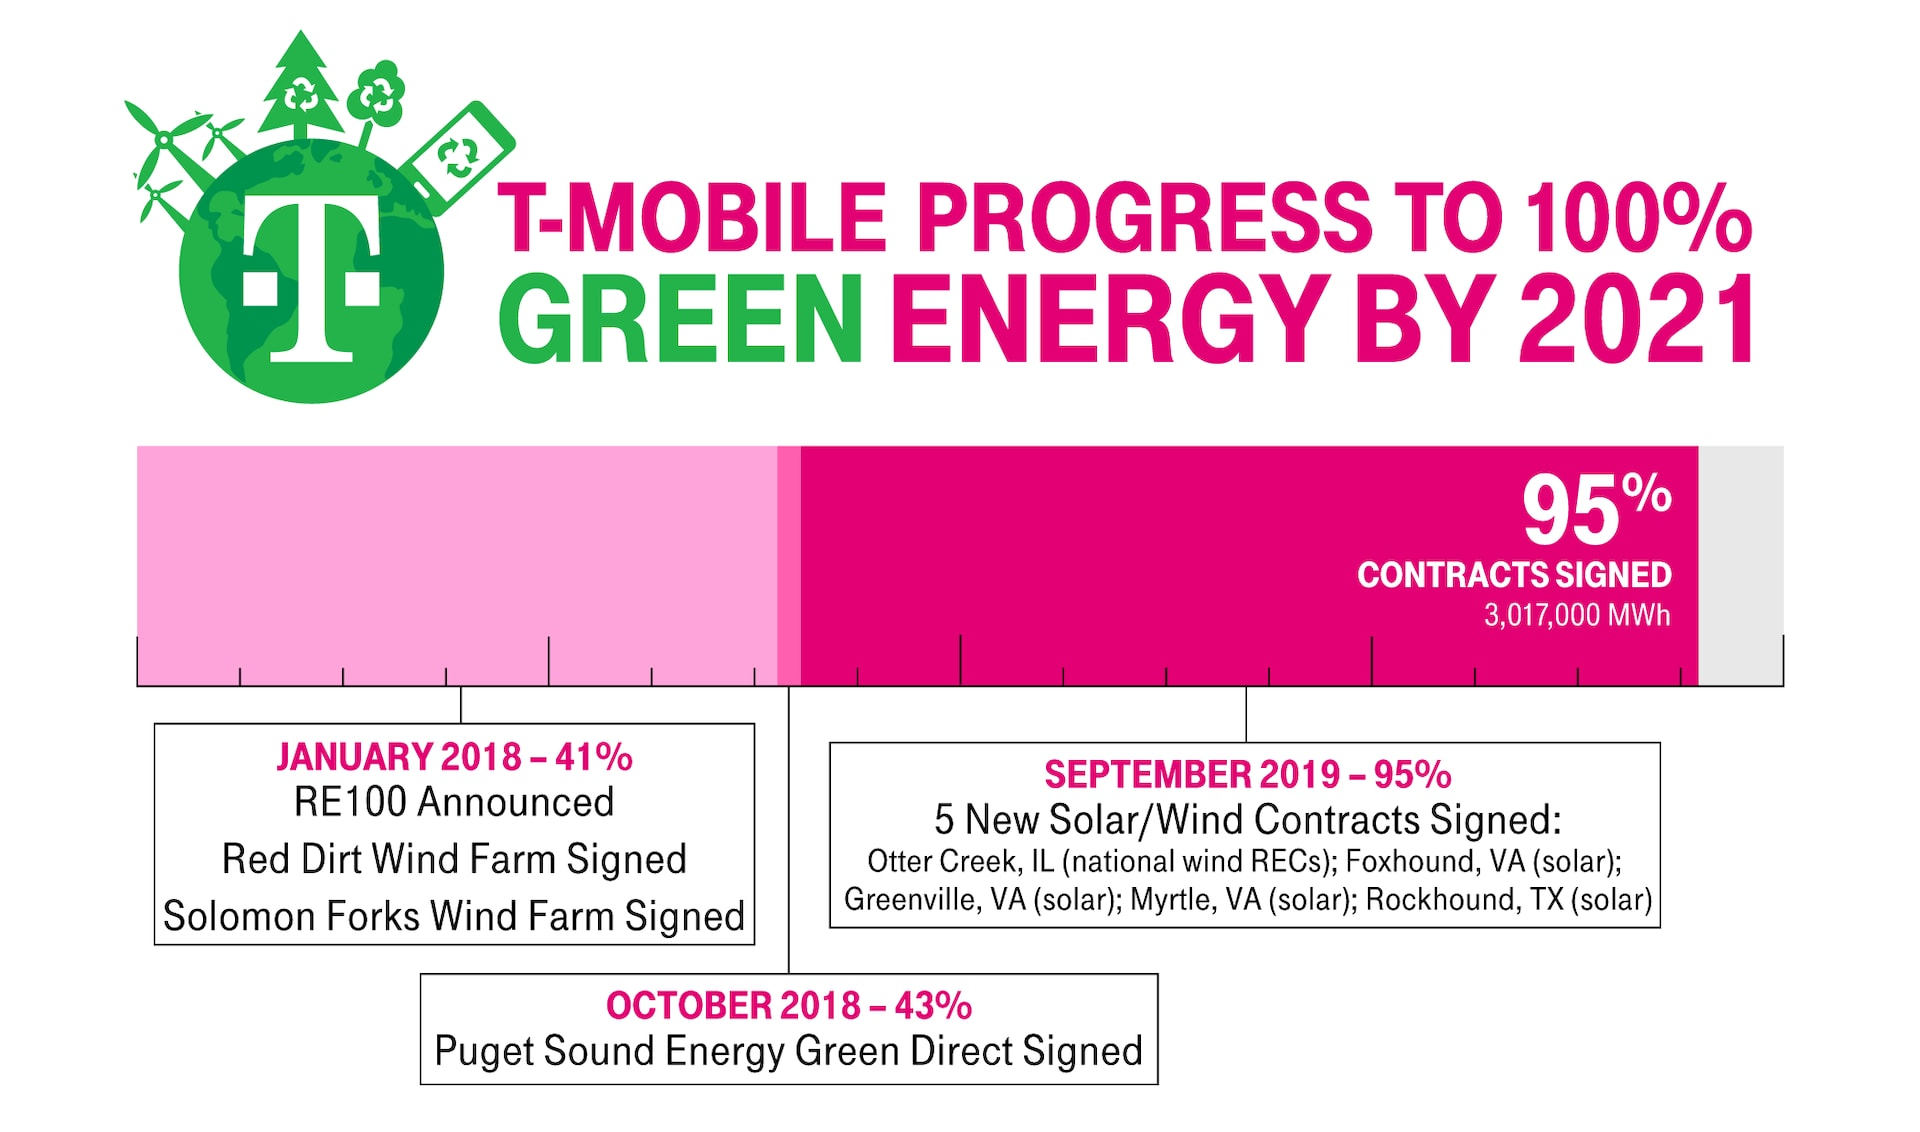 Five More Energy Contracts and New Wind Farm Bring T-Mobile Even Closer (now at 95%!) to its RE100 2021 Goal